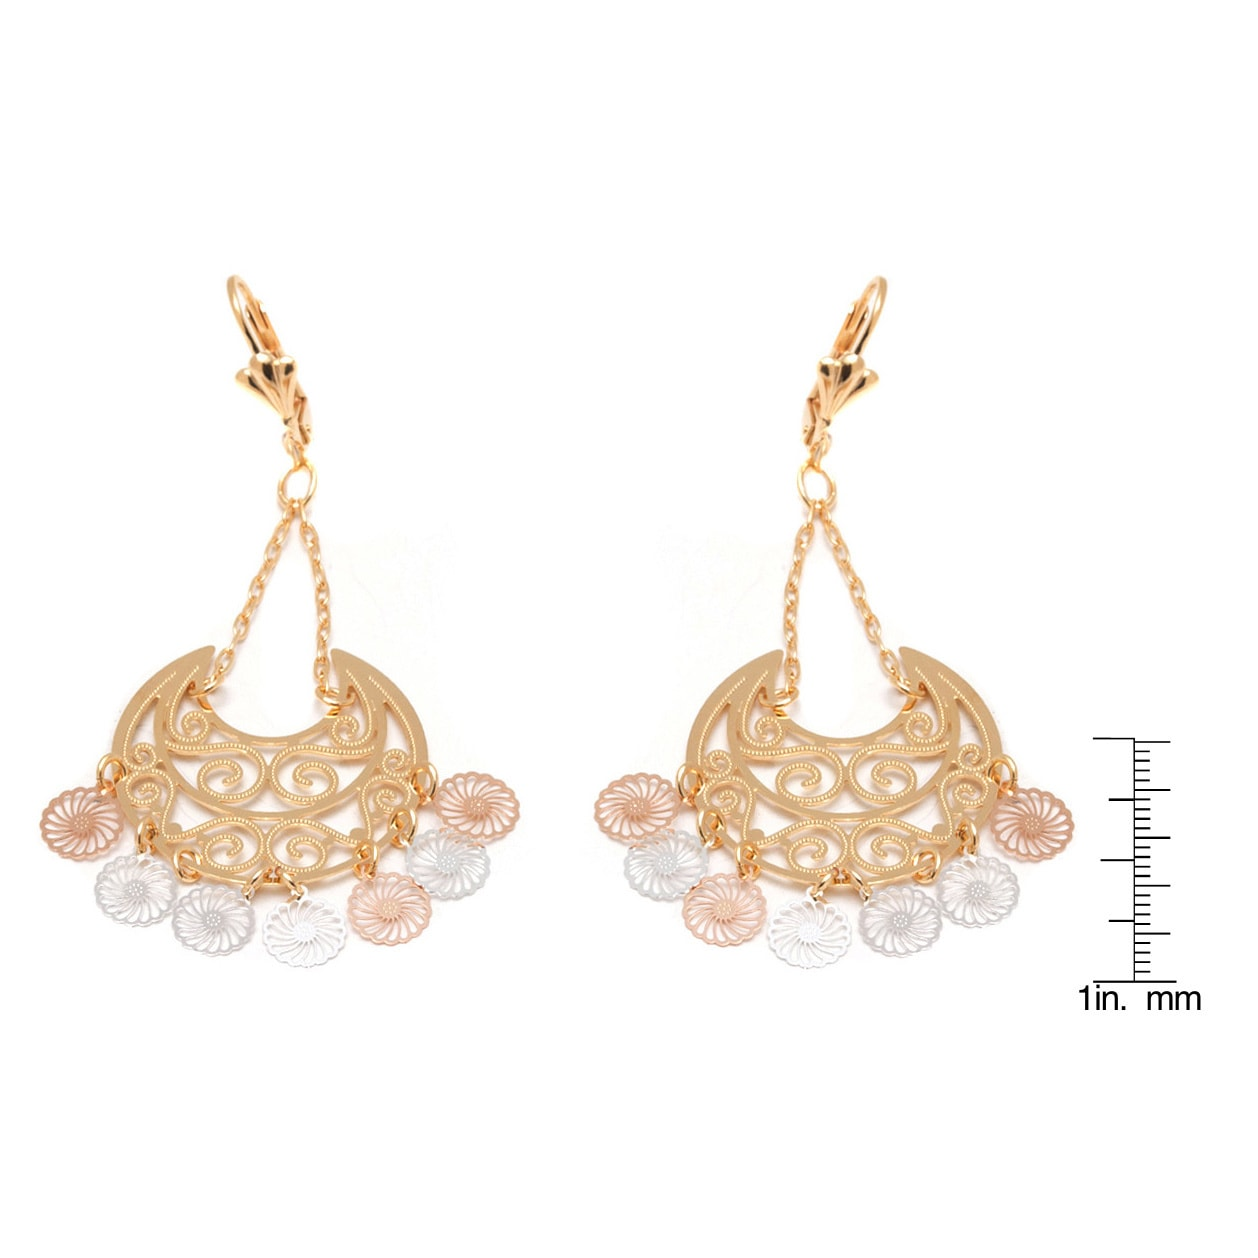 Goldplated 3 tone filigree cut out chandelier earrings free goldplated 3 tone filigree cut out chandelier earrings free shipping on orders over 45 overstock 17194602 arubaitofo Images